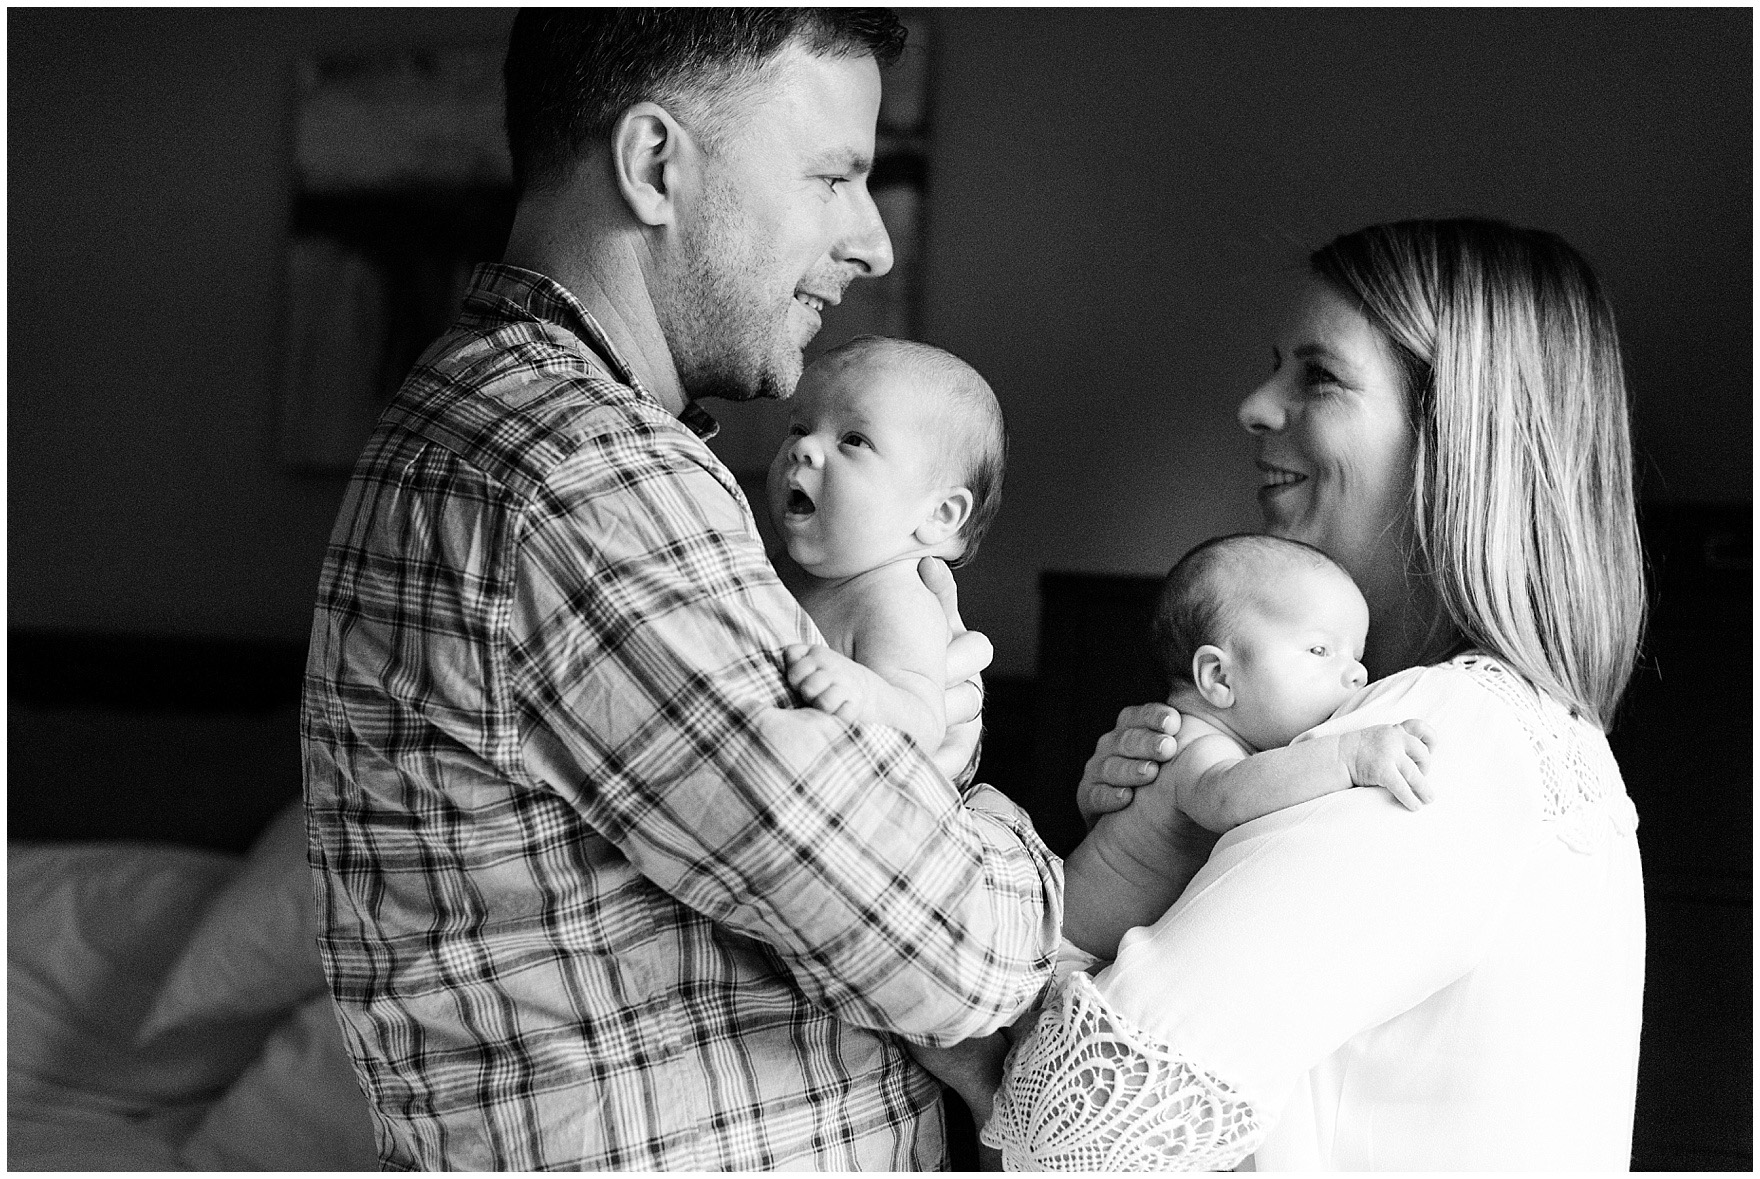 Husband and wife hold newborn twin baby girls during a West Loop Chicago newborn session.